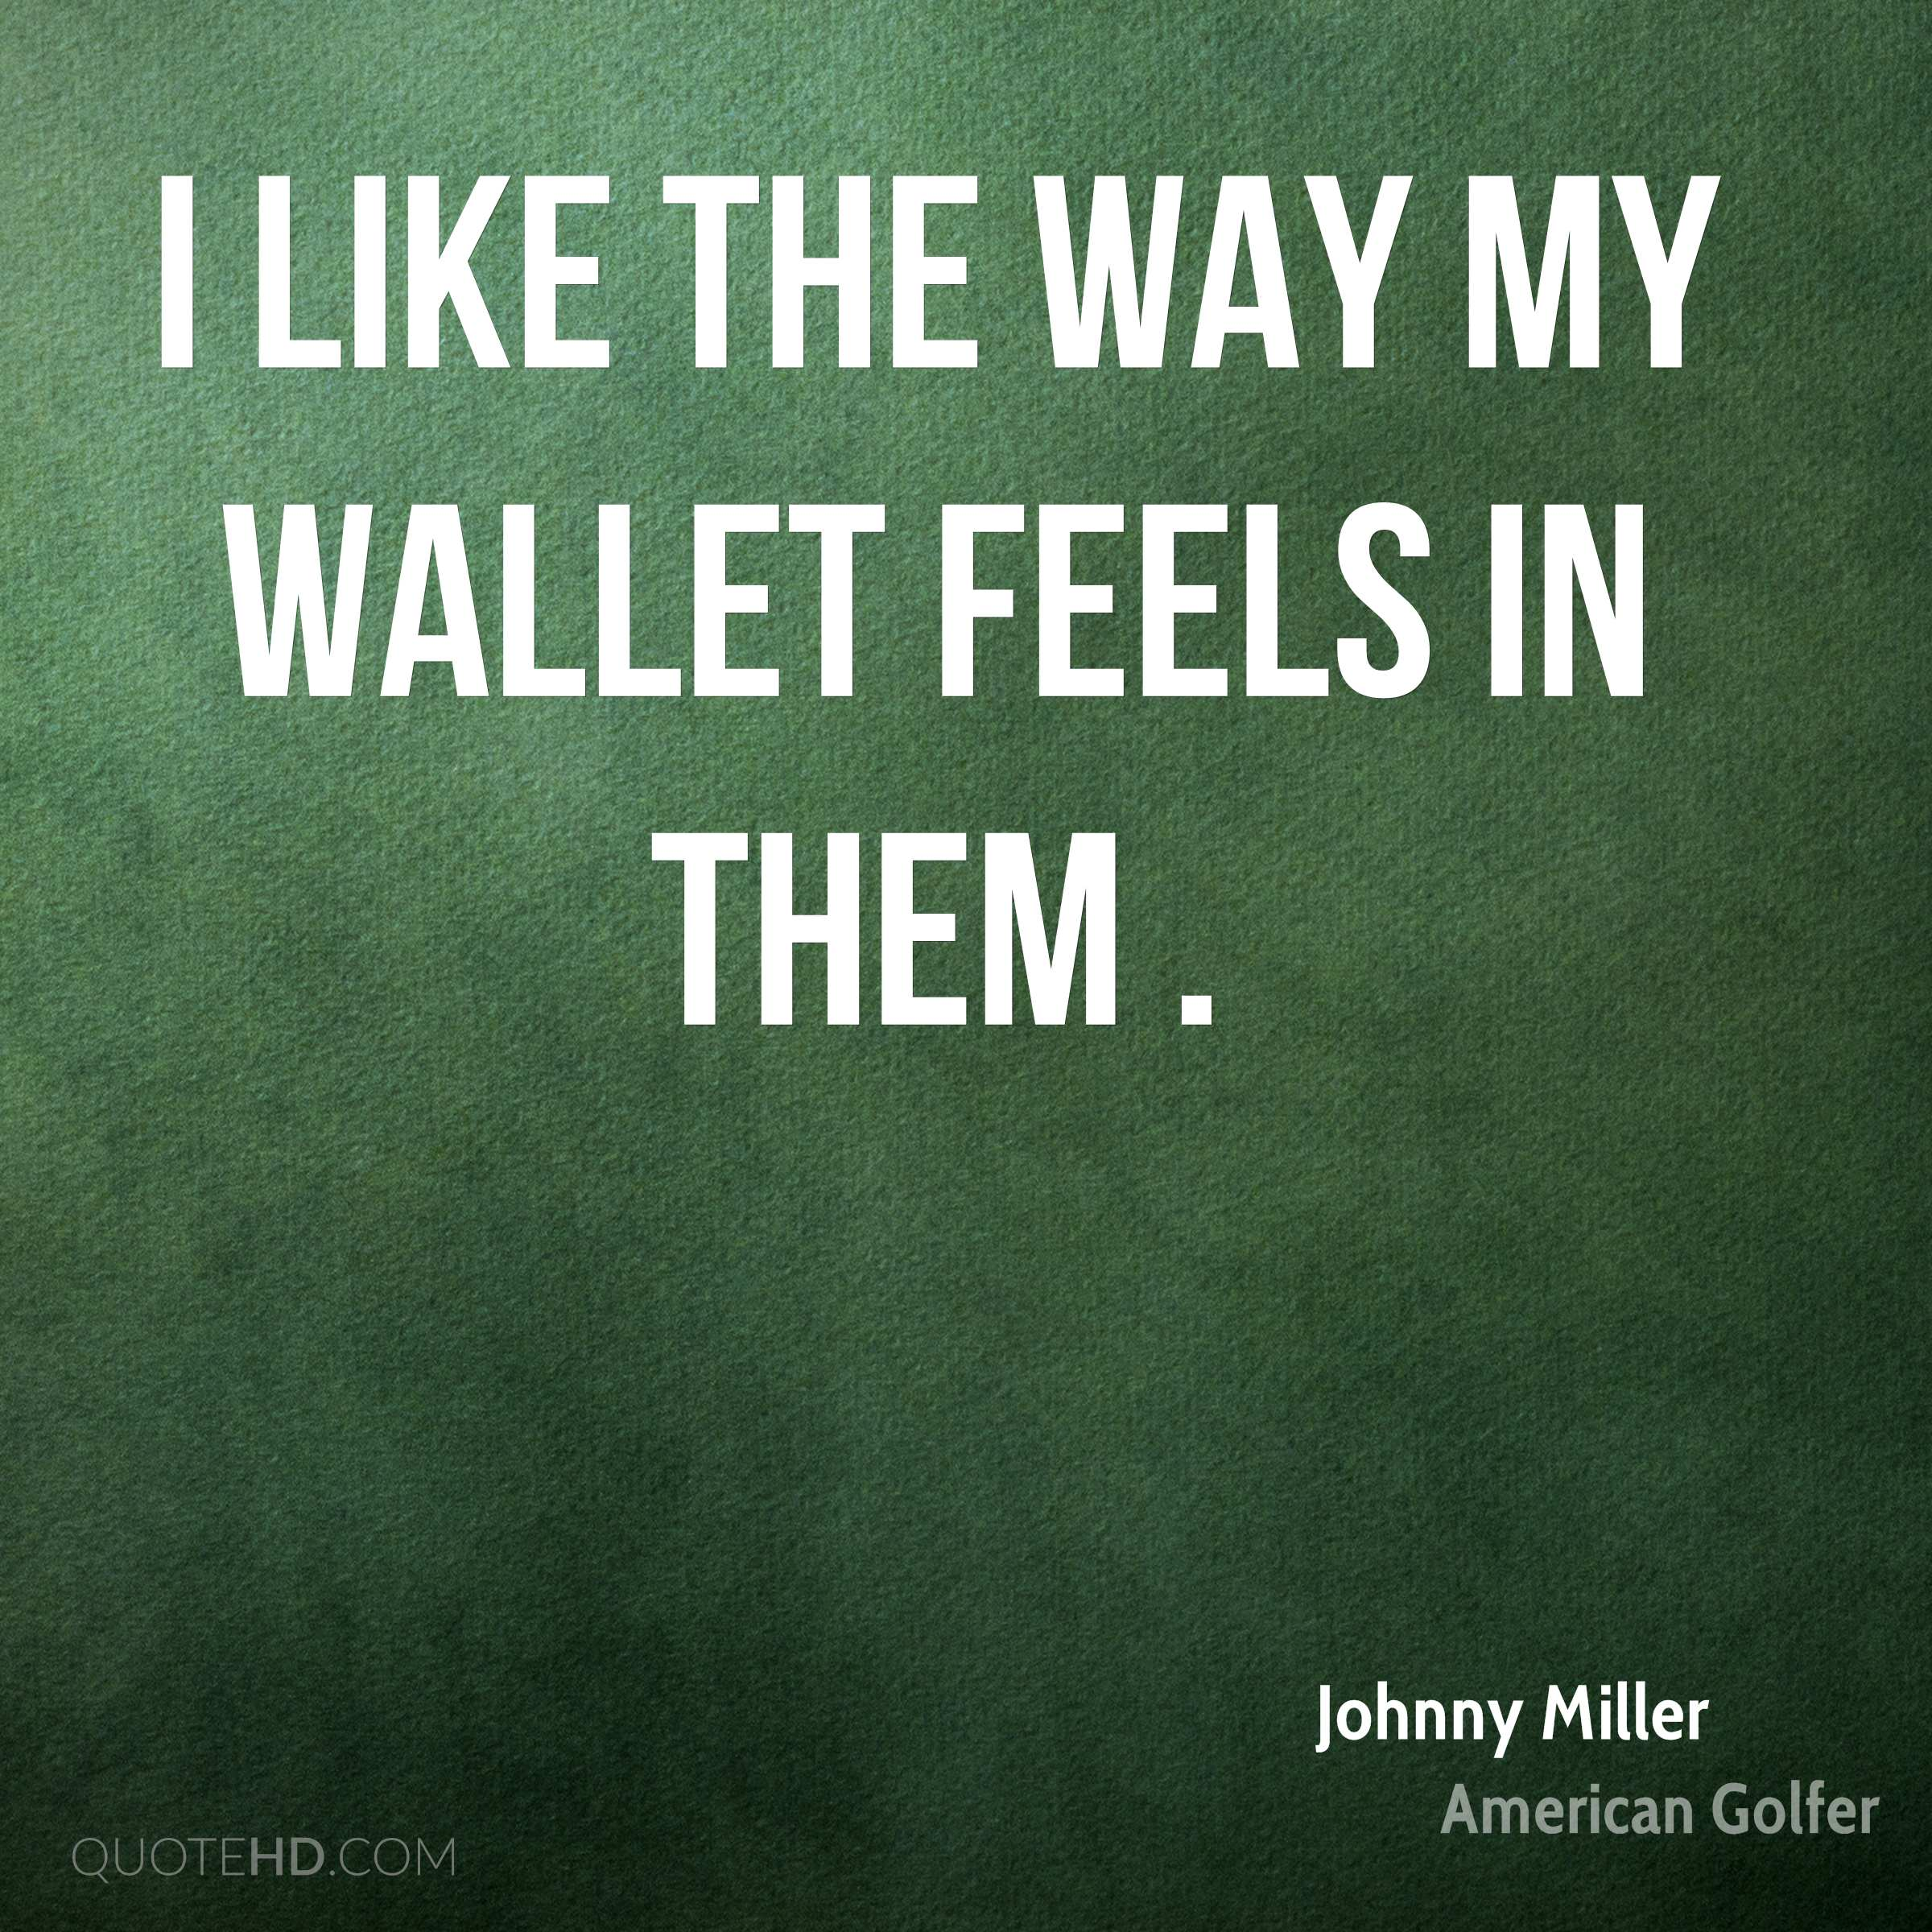 I like the way my wallet feels in them .